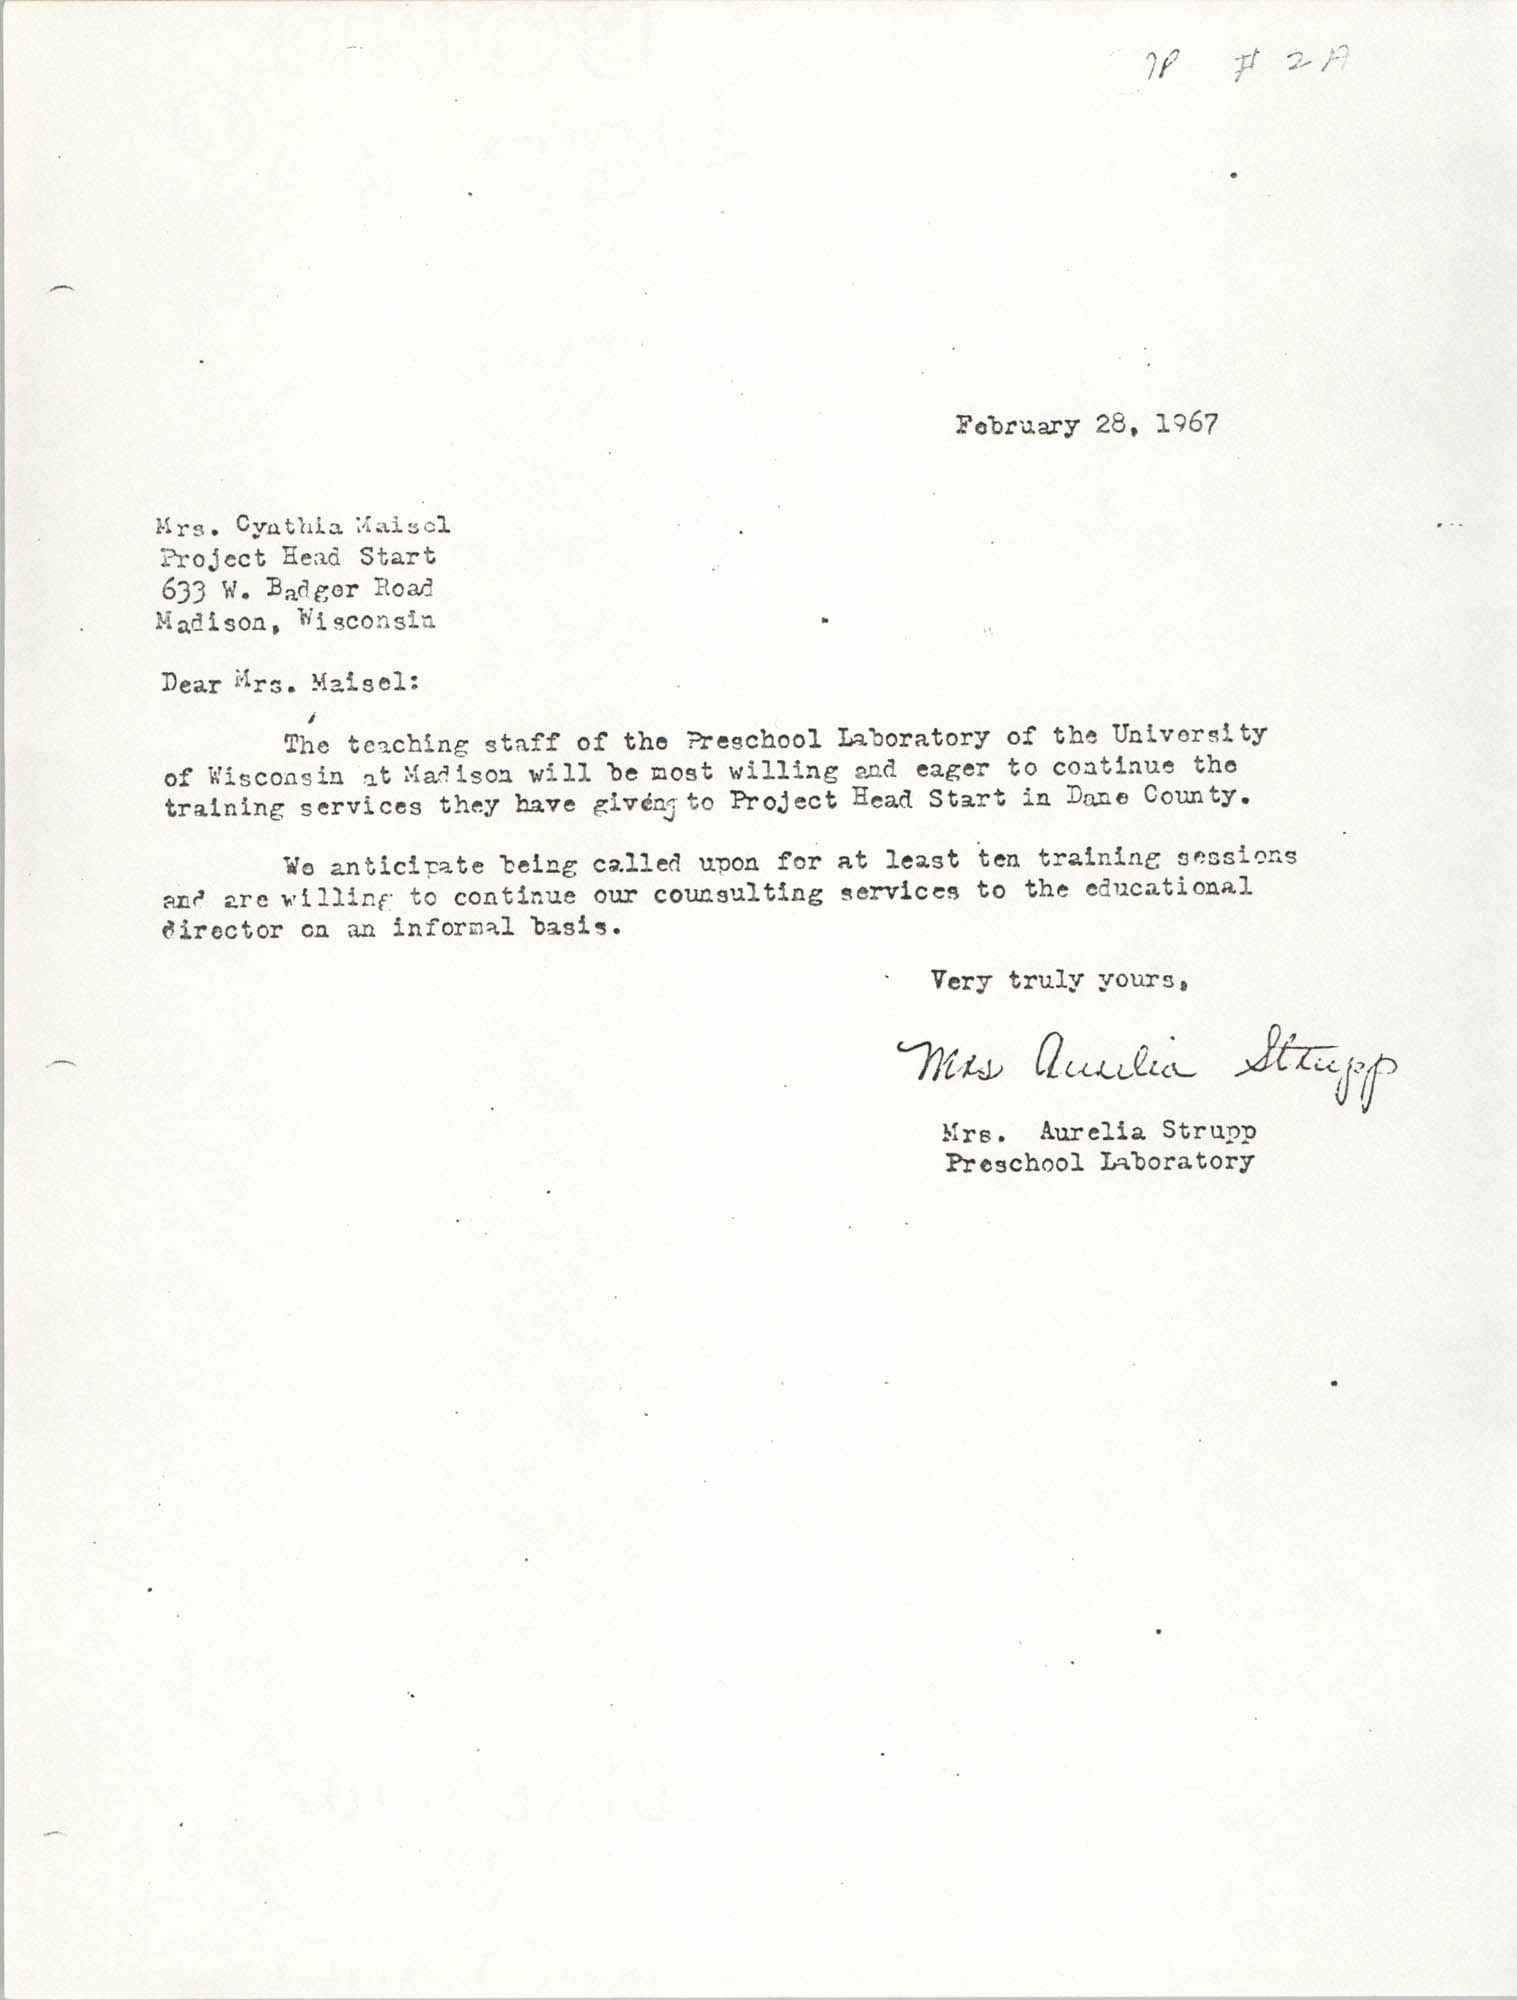 Letter from Aurelia Strupp to Cynthia Maisel, February 28, 1967